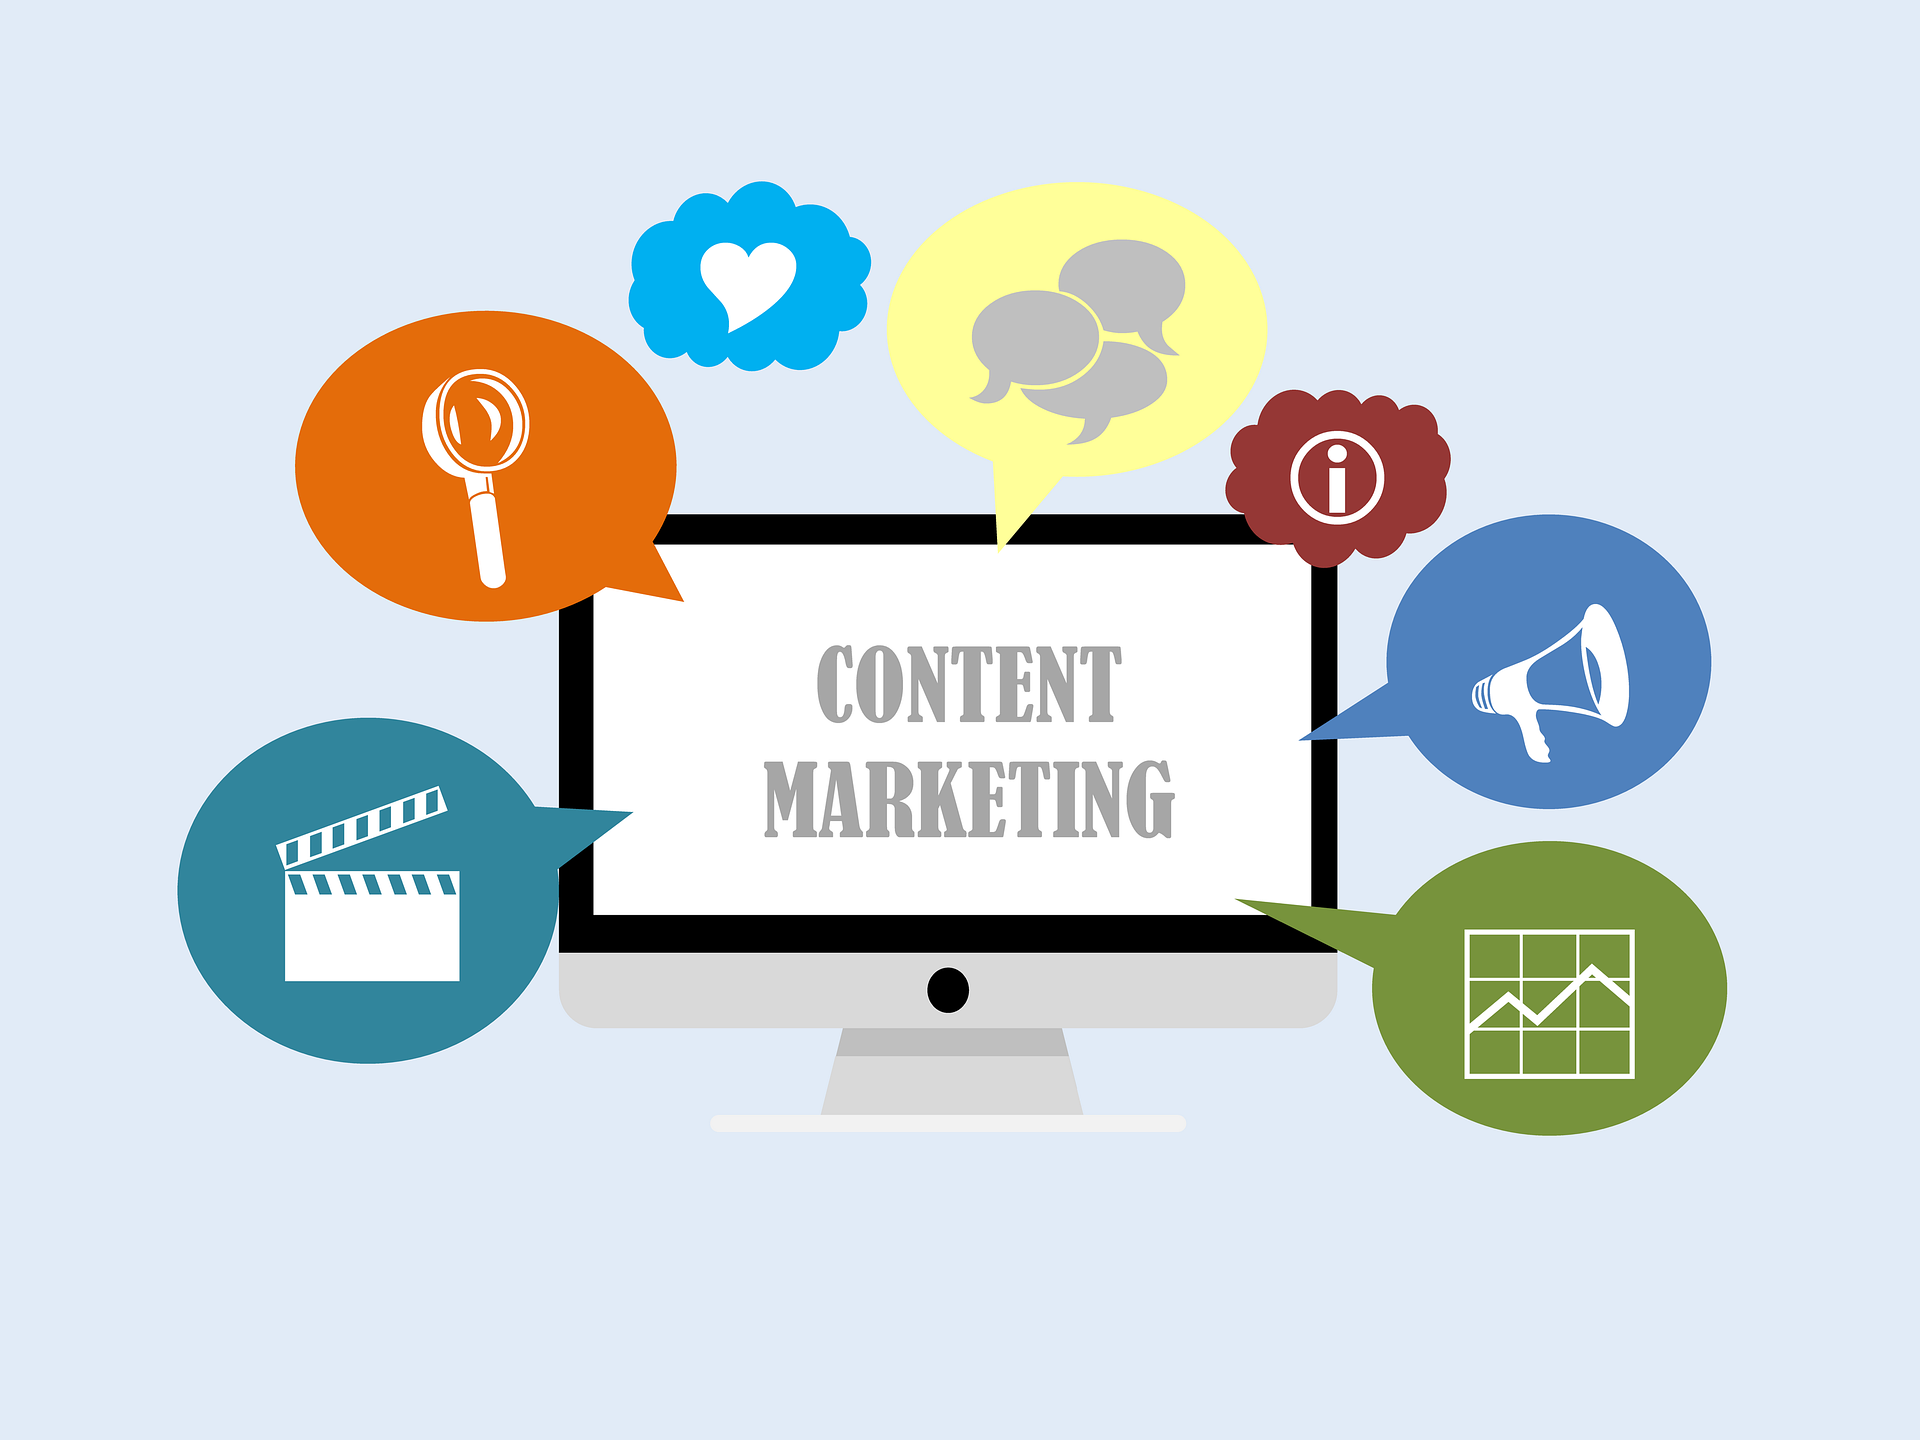 Use video advertising as part of content marketing.